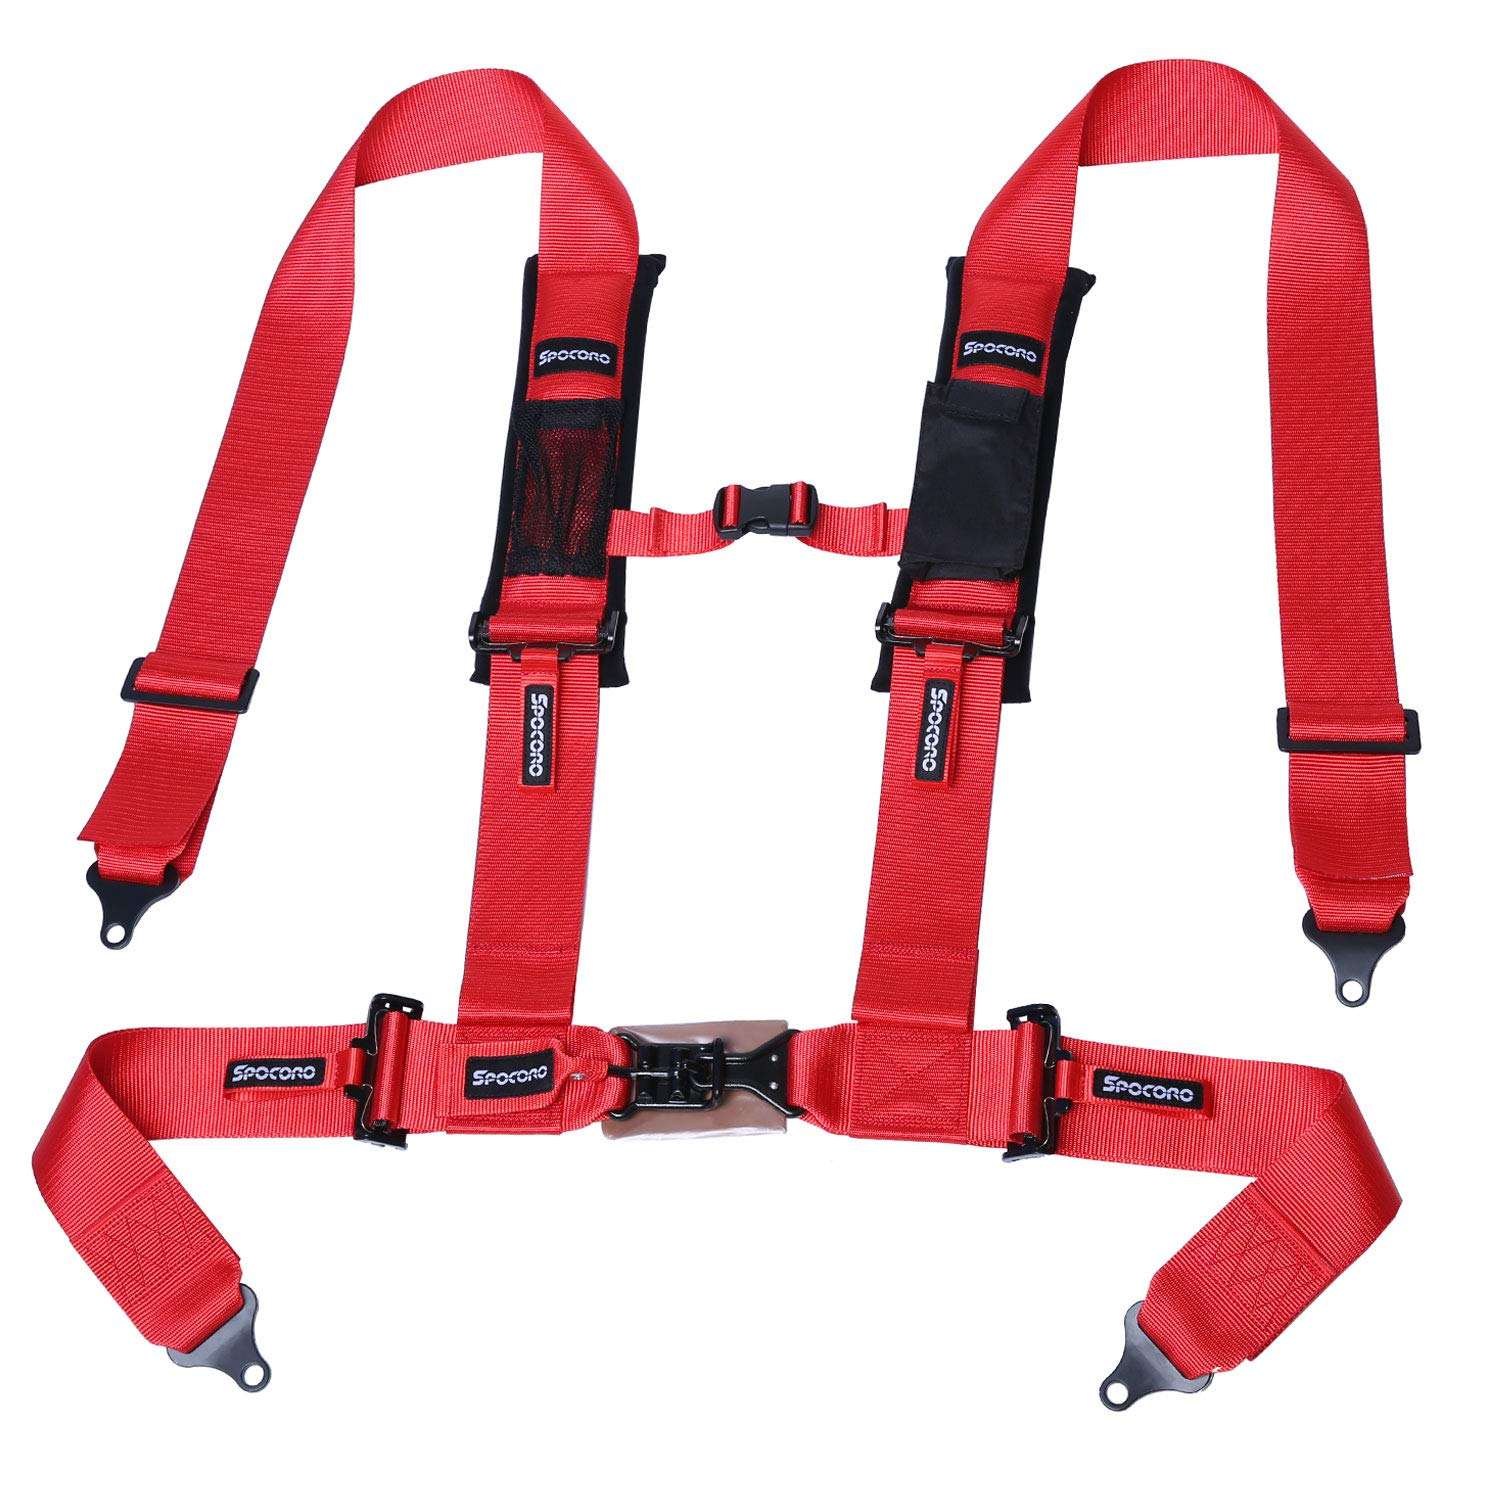 "Spocoro SH-0304RD-LL-1 Latch and Link 4 Point Harness with Soft Heavy Duty Shoulder Pads,3""Straps,Red (Pack of 1)"